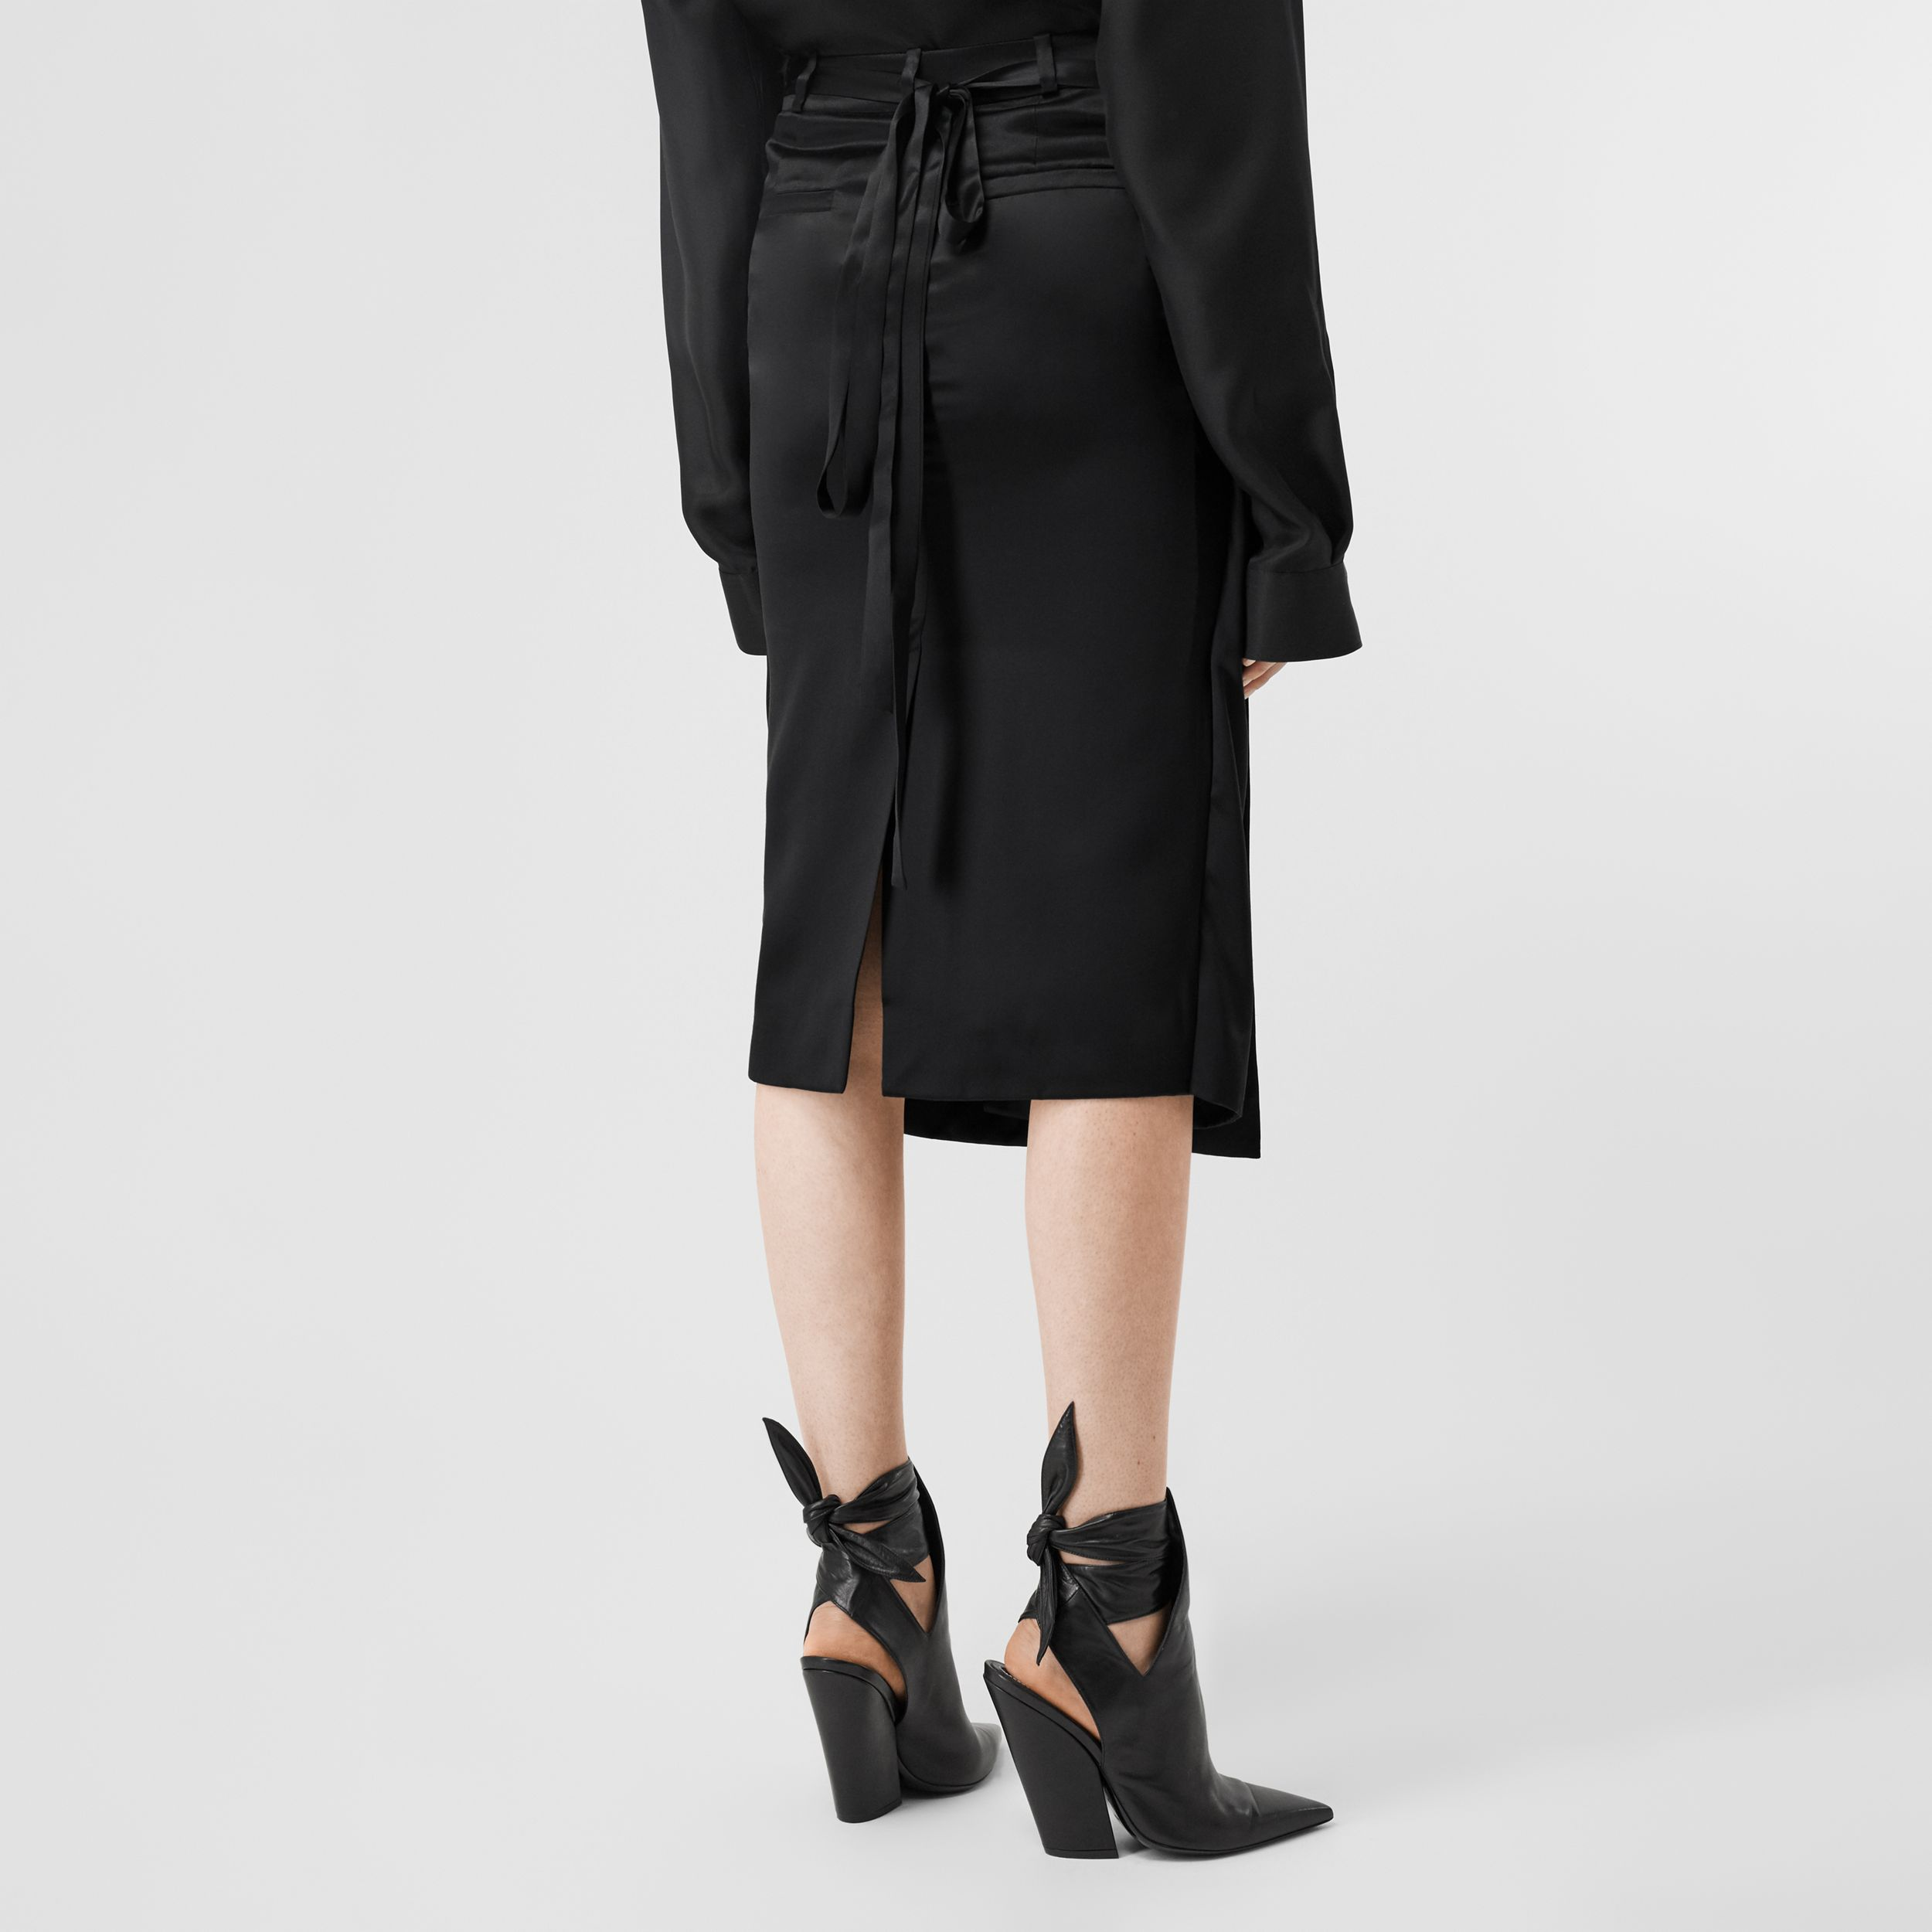 Silk Satin Foldover Skirt in Black - Women | Burberry Hong Kong S.A.R. - 2